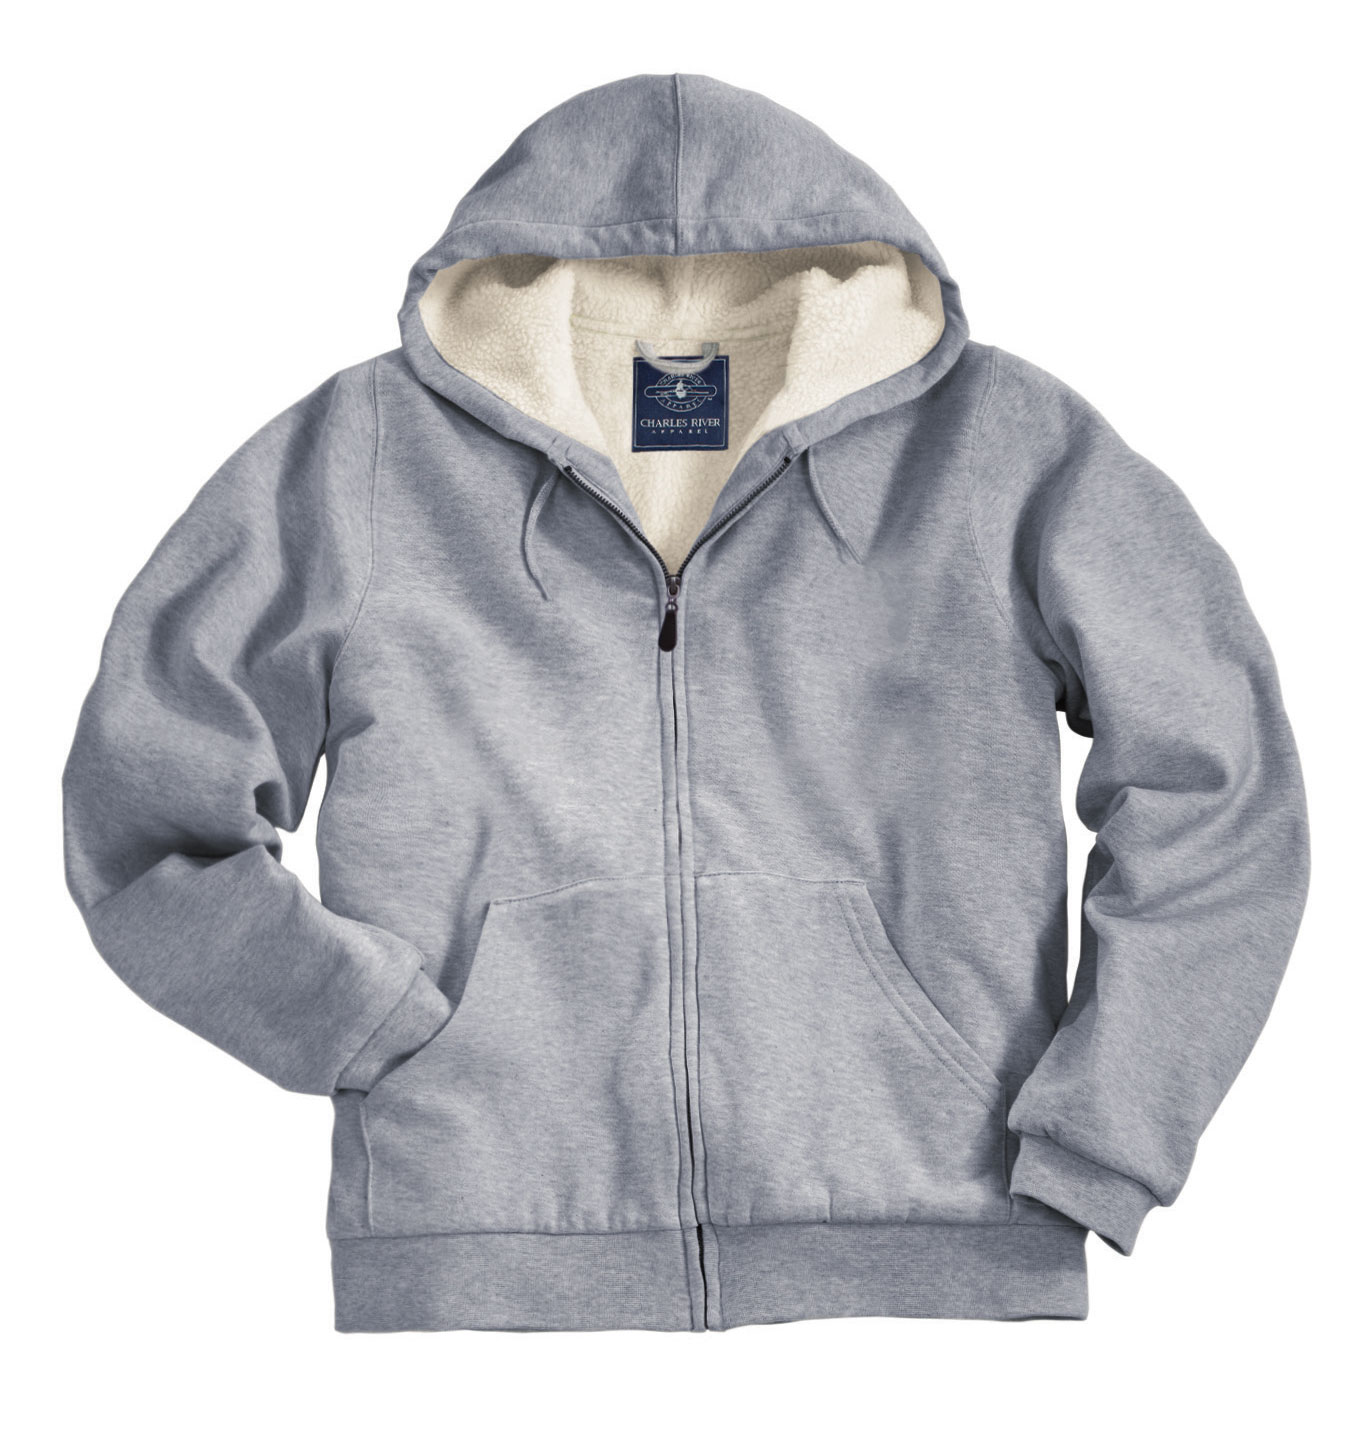 Mens  Sherpa Lined  Hooded Sweatshirt by Charles River Apparel